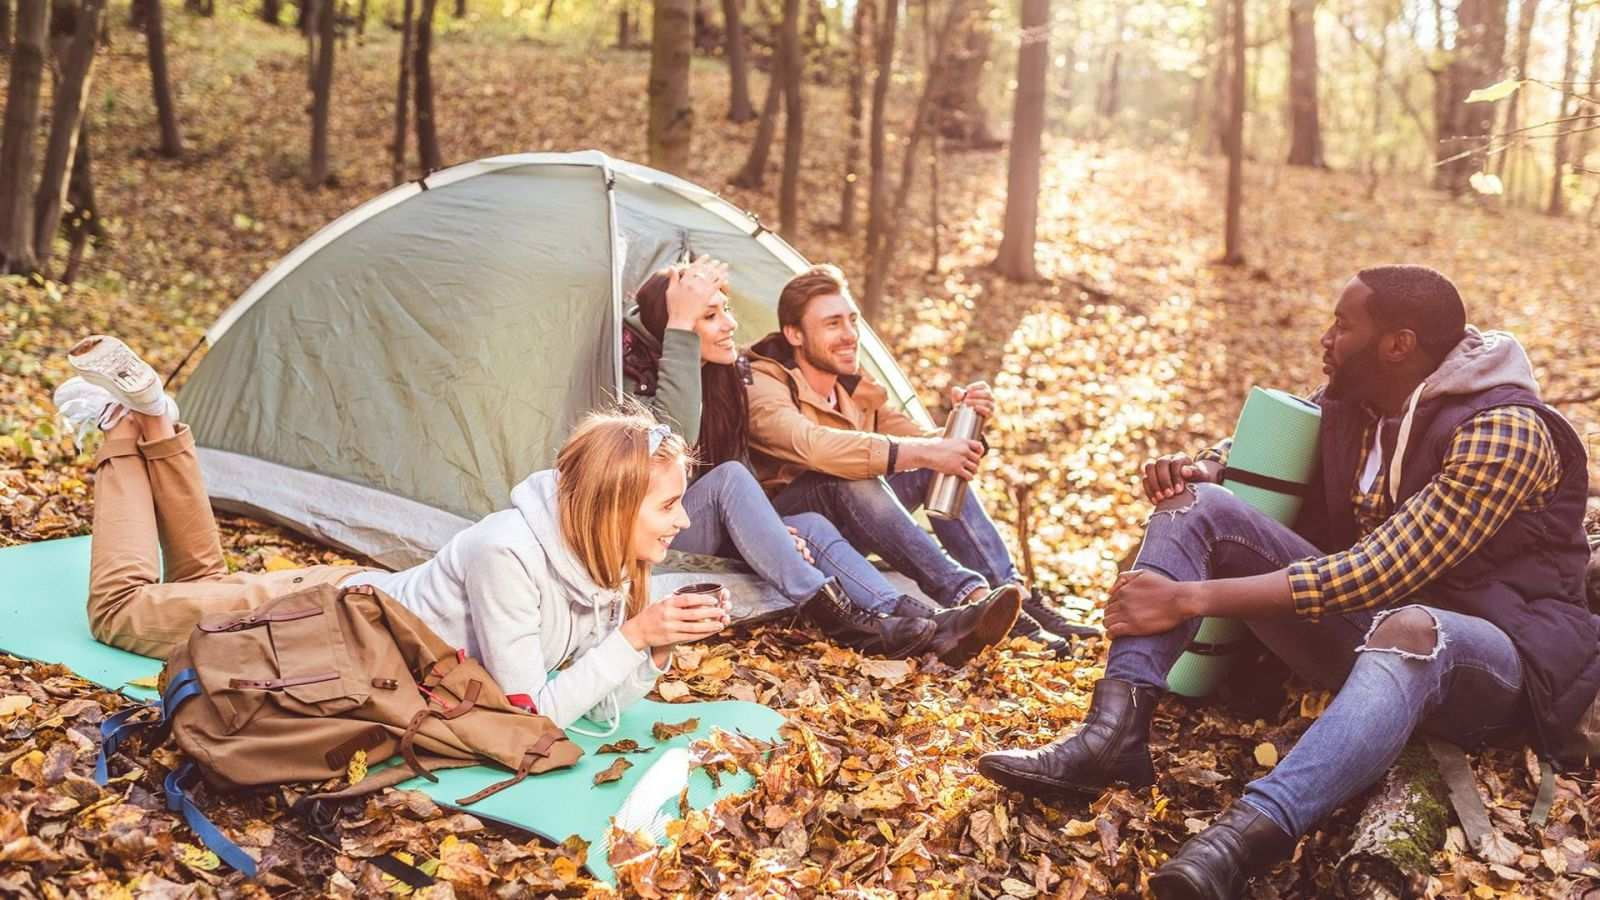 Did Camping Become More Popular in 2020?